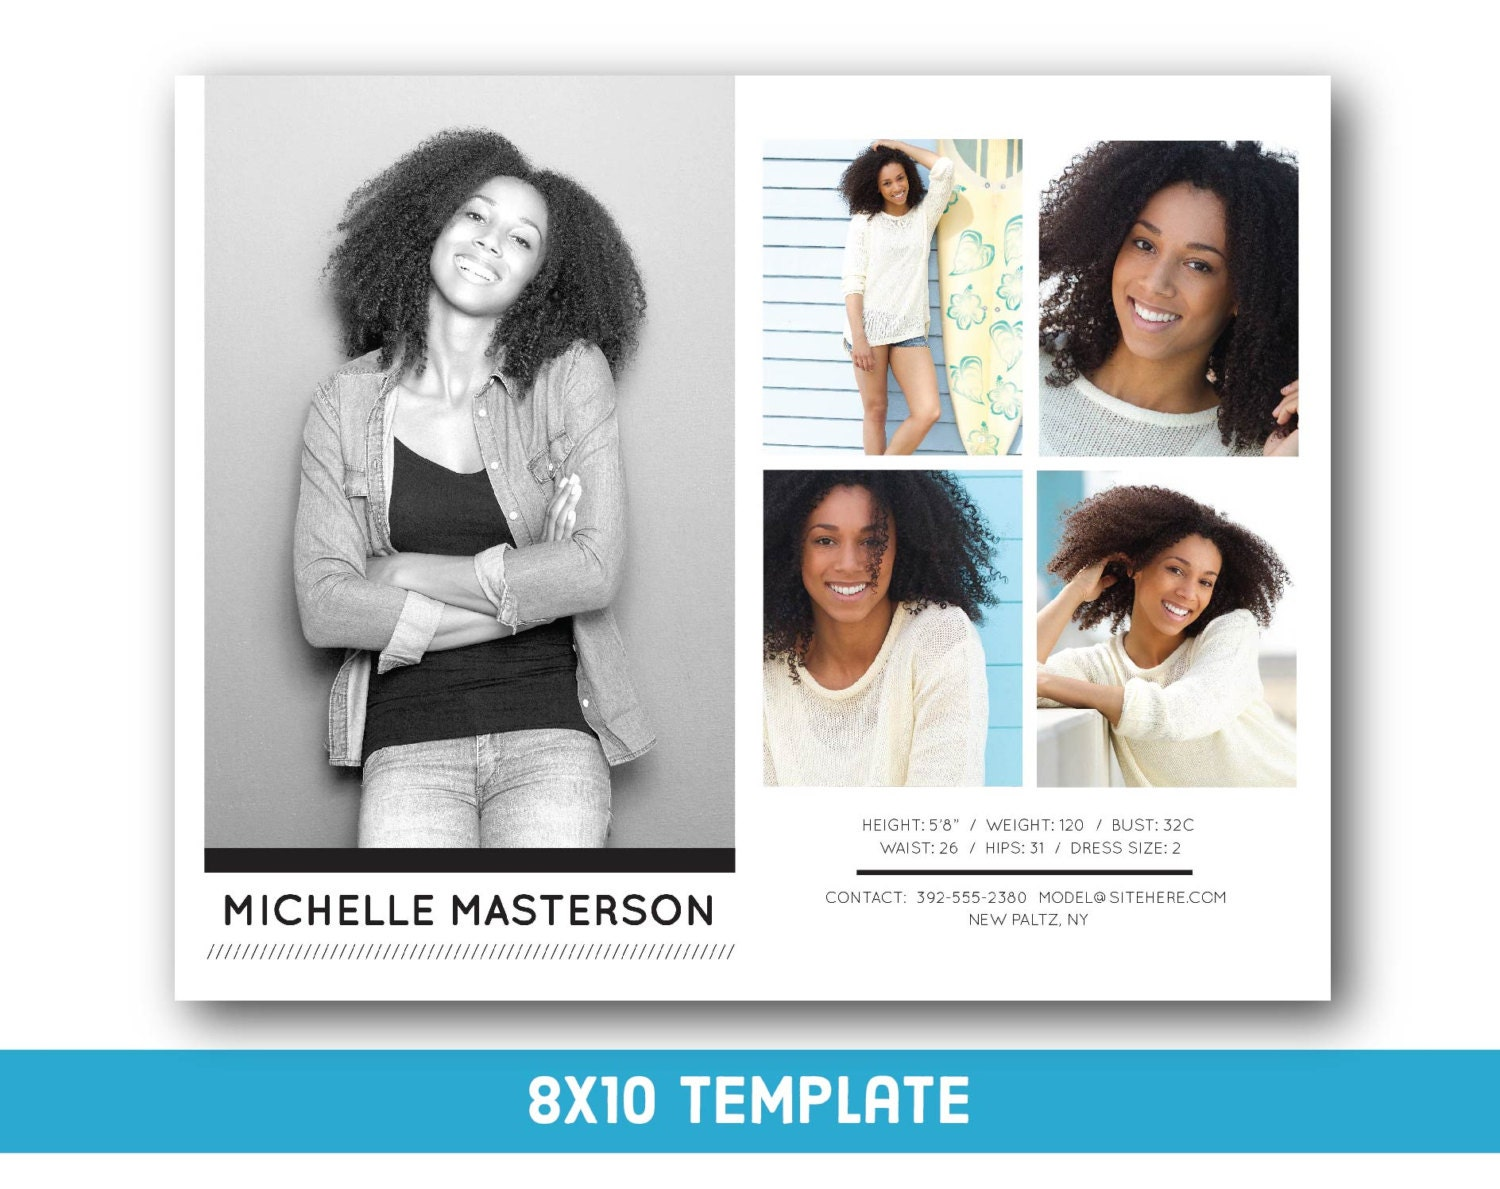 free model comp card template psd customizable digital model comp card 8x10 fashion forward